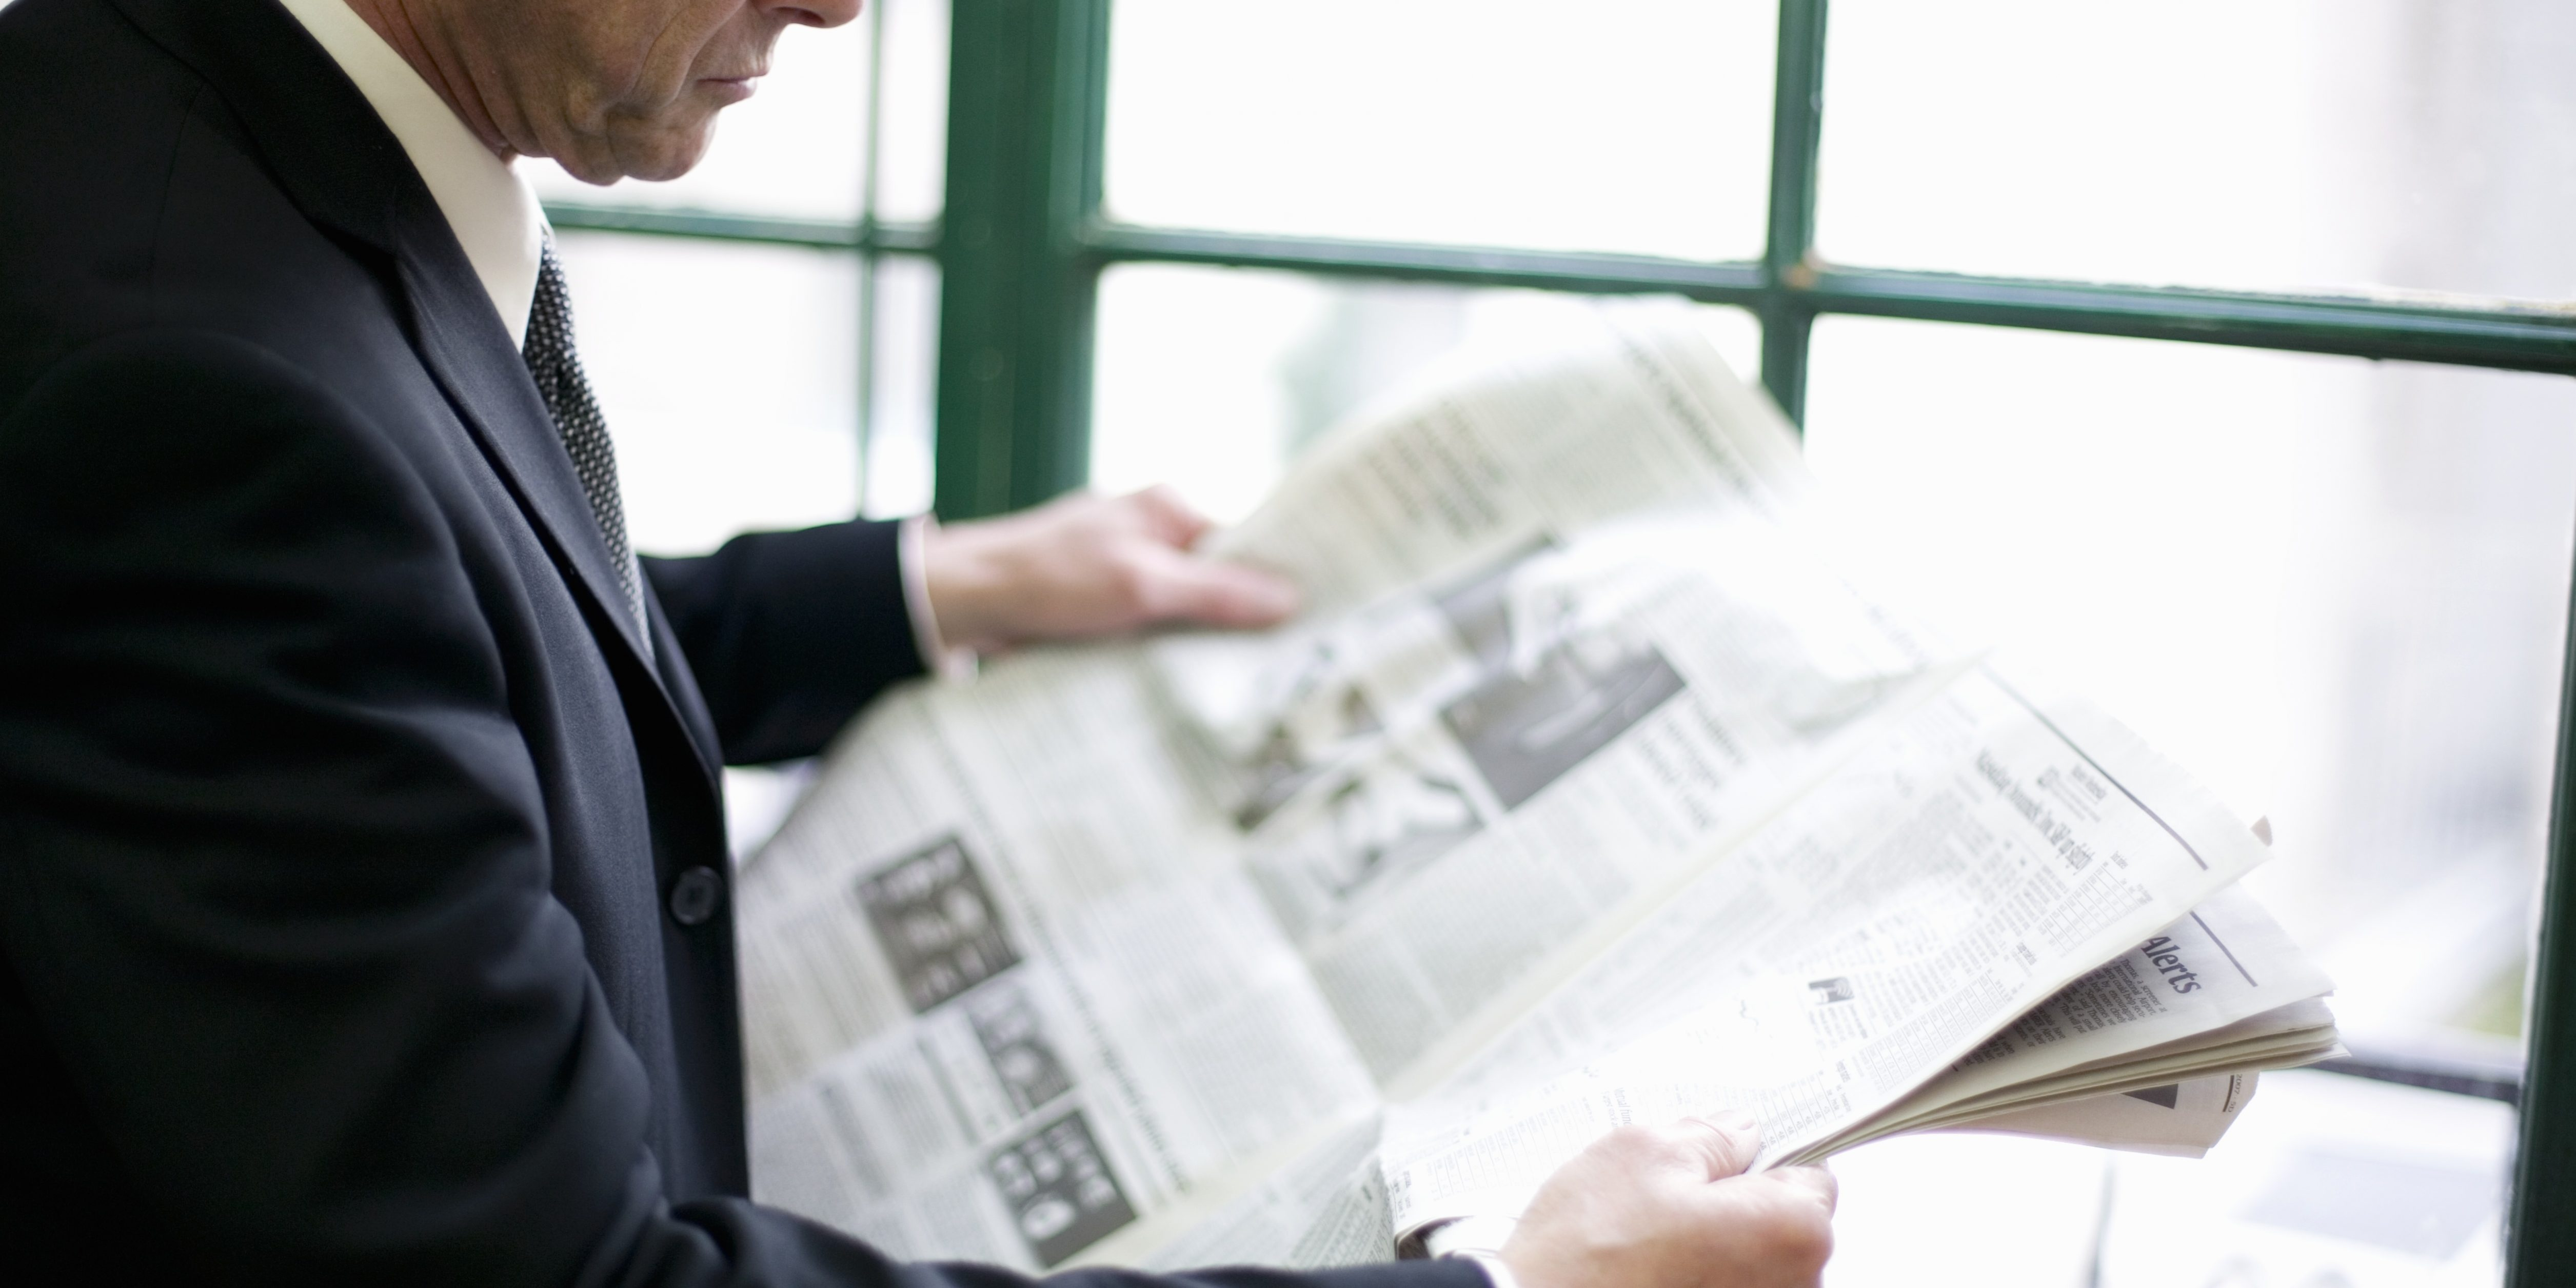 9 Creative Story Ideas To Attract Media Coverage To Your